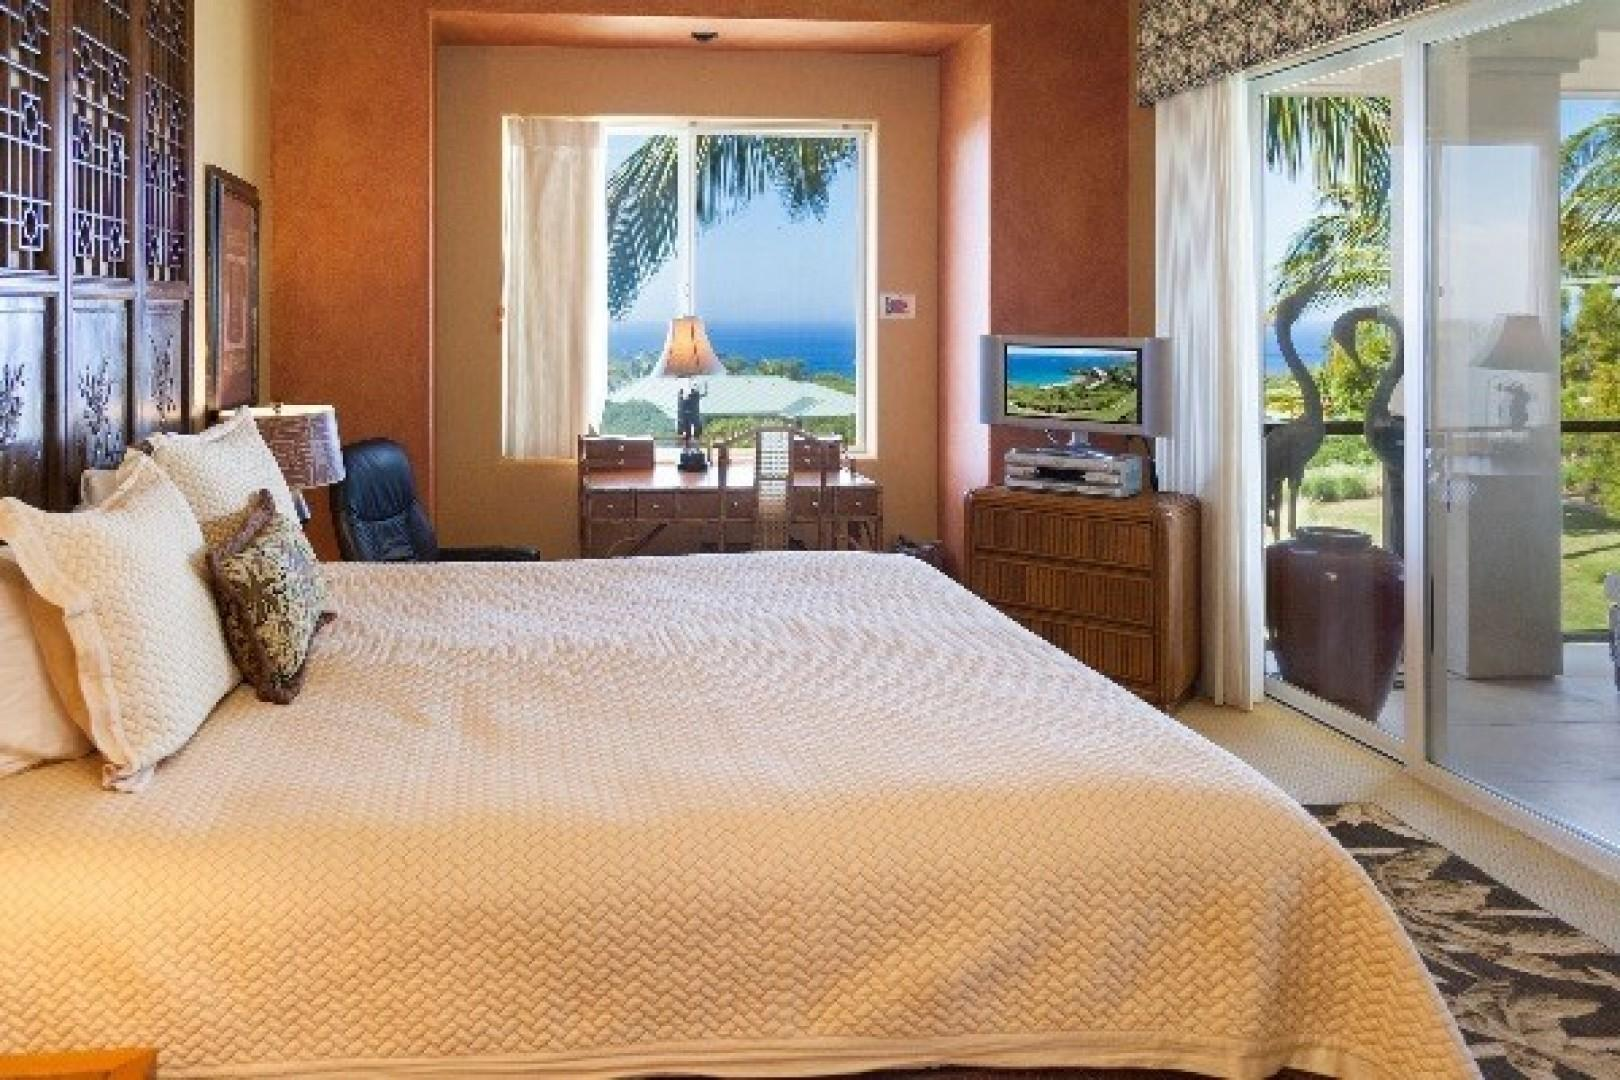 Master Bedroom with Ocean view and access to lanai.